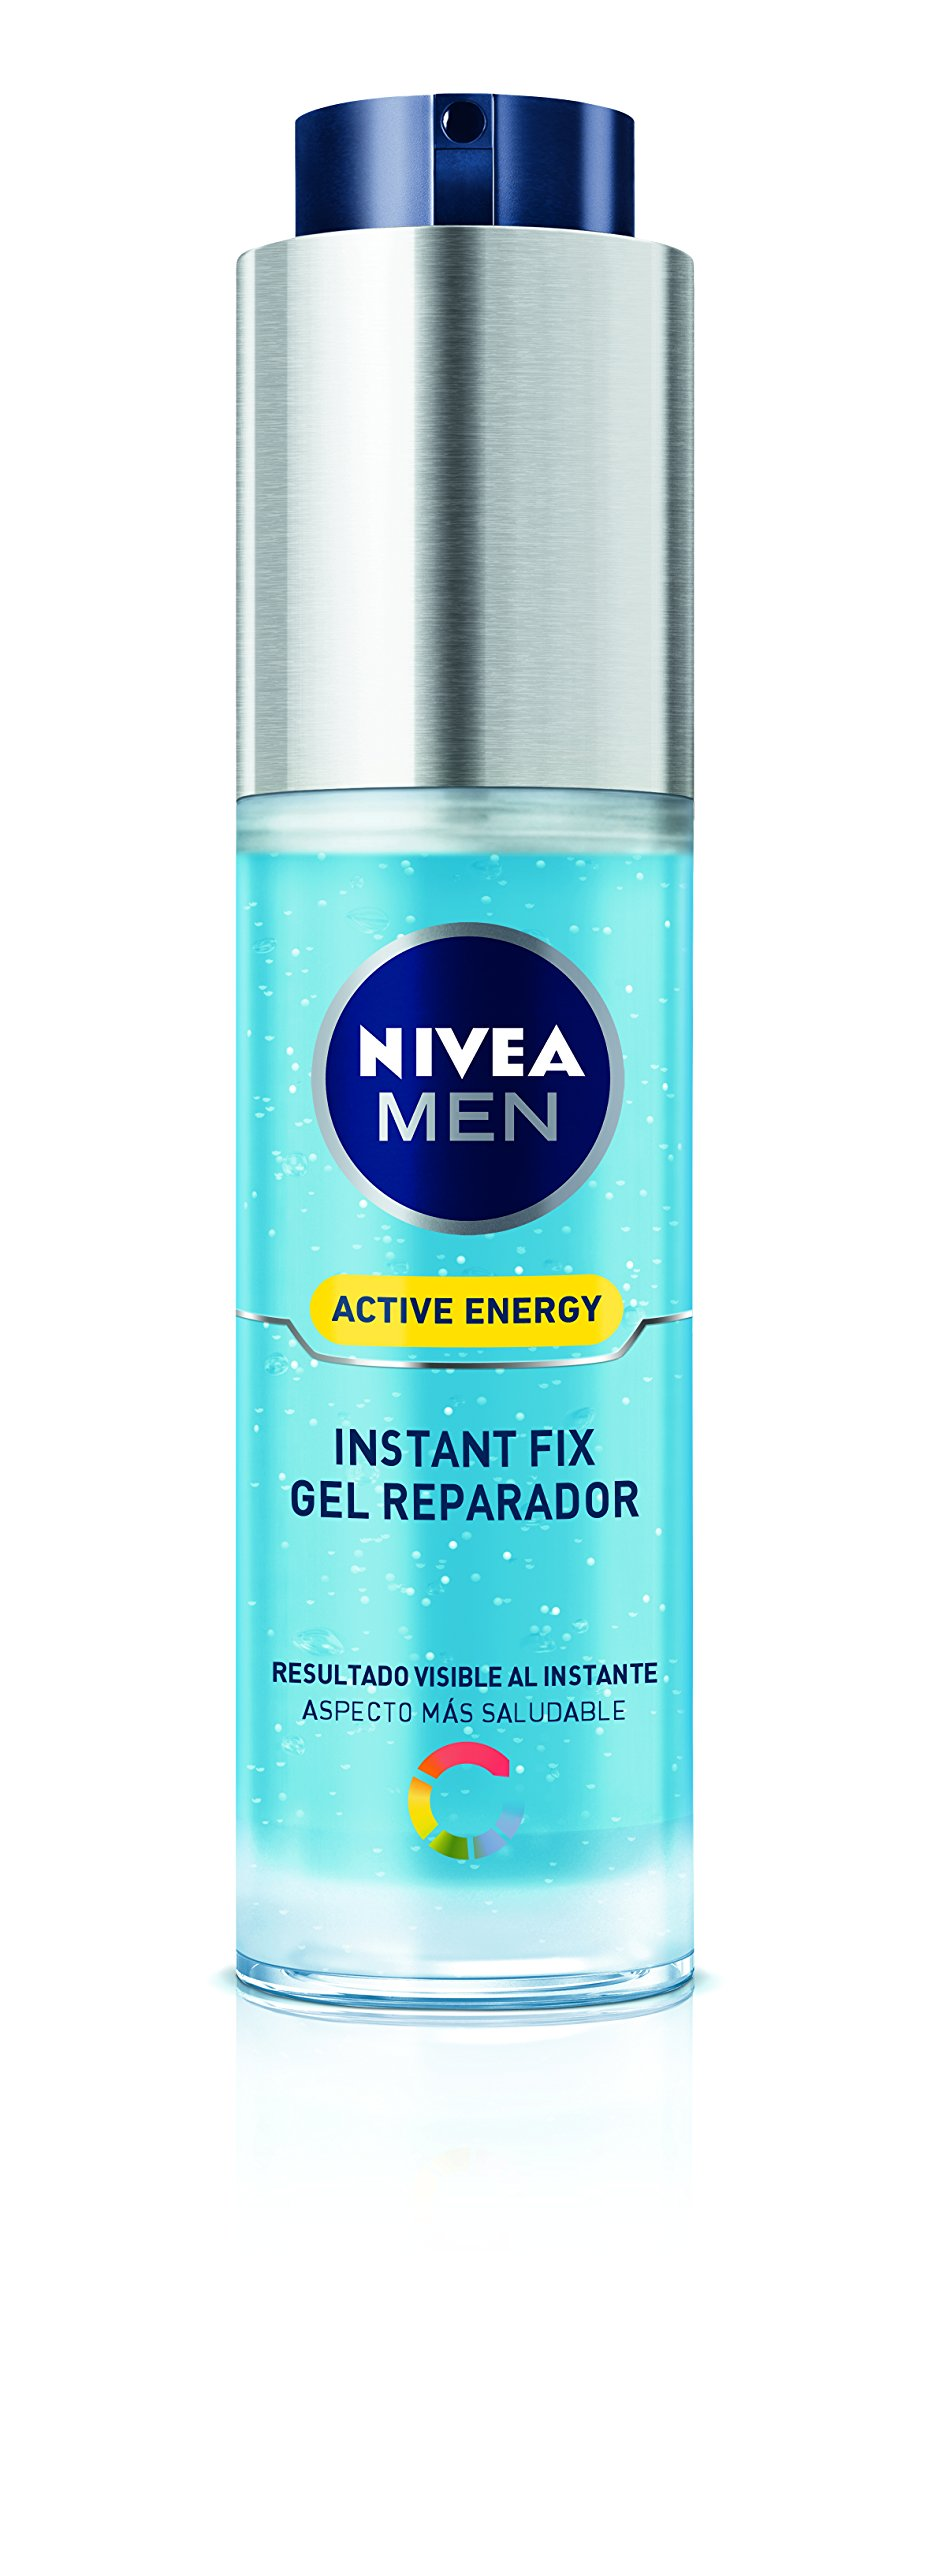 NIVEA Men gel reparador active energy instant fix dosificador 50 ml